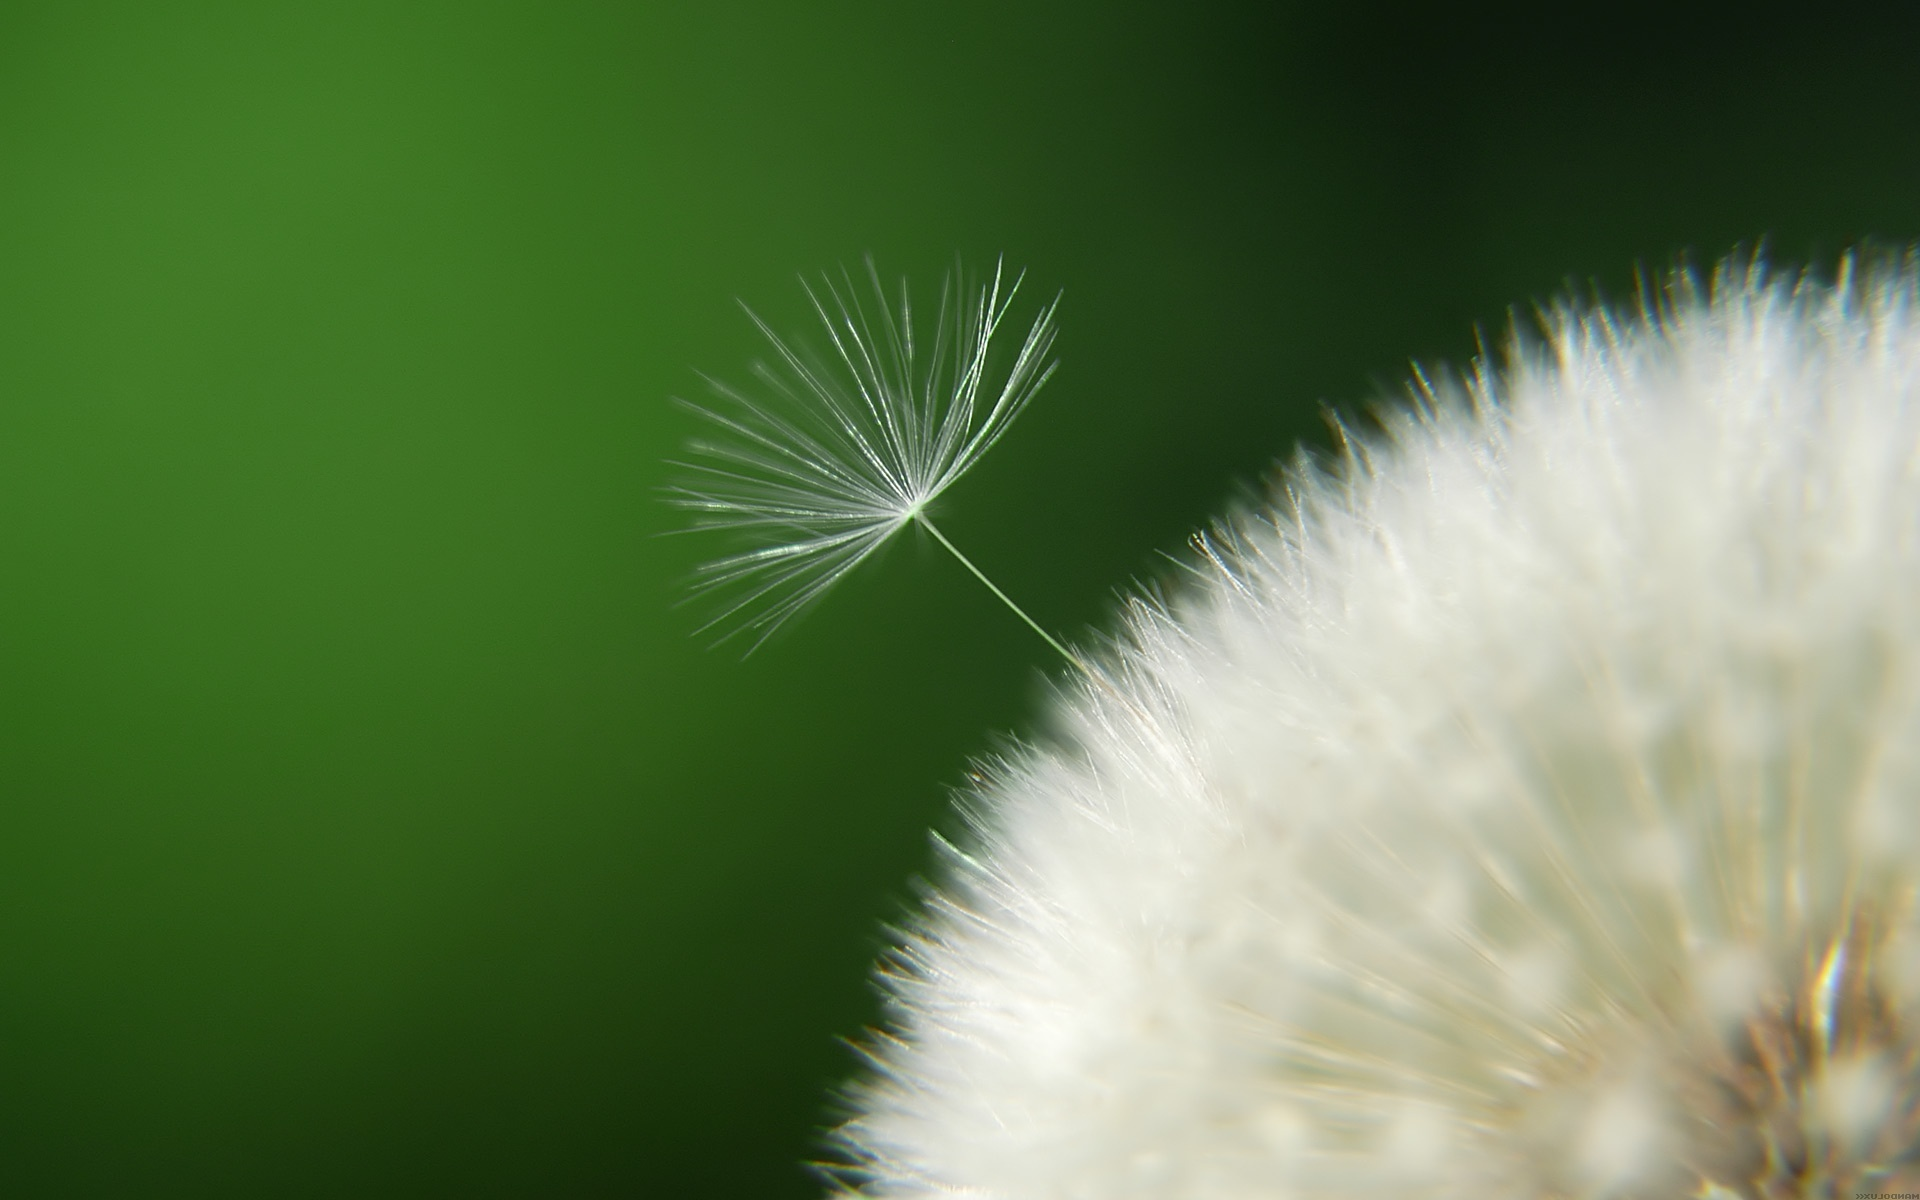 Awesome Dandelion Seeds Wallpaper